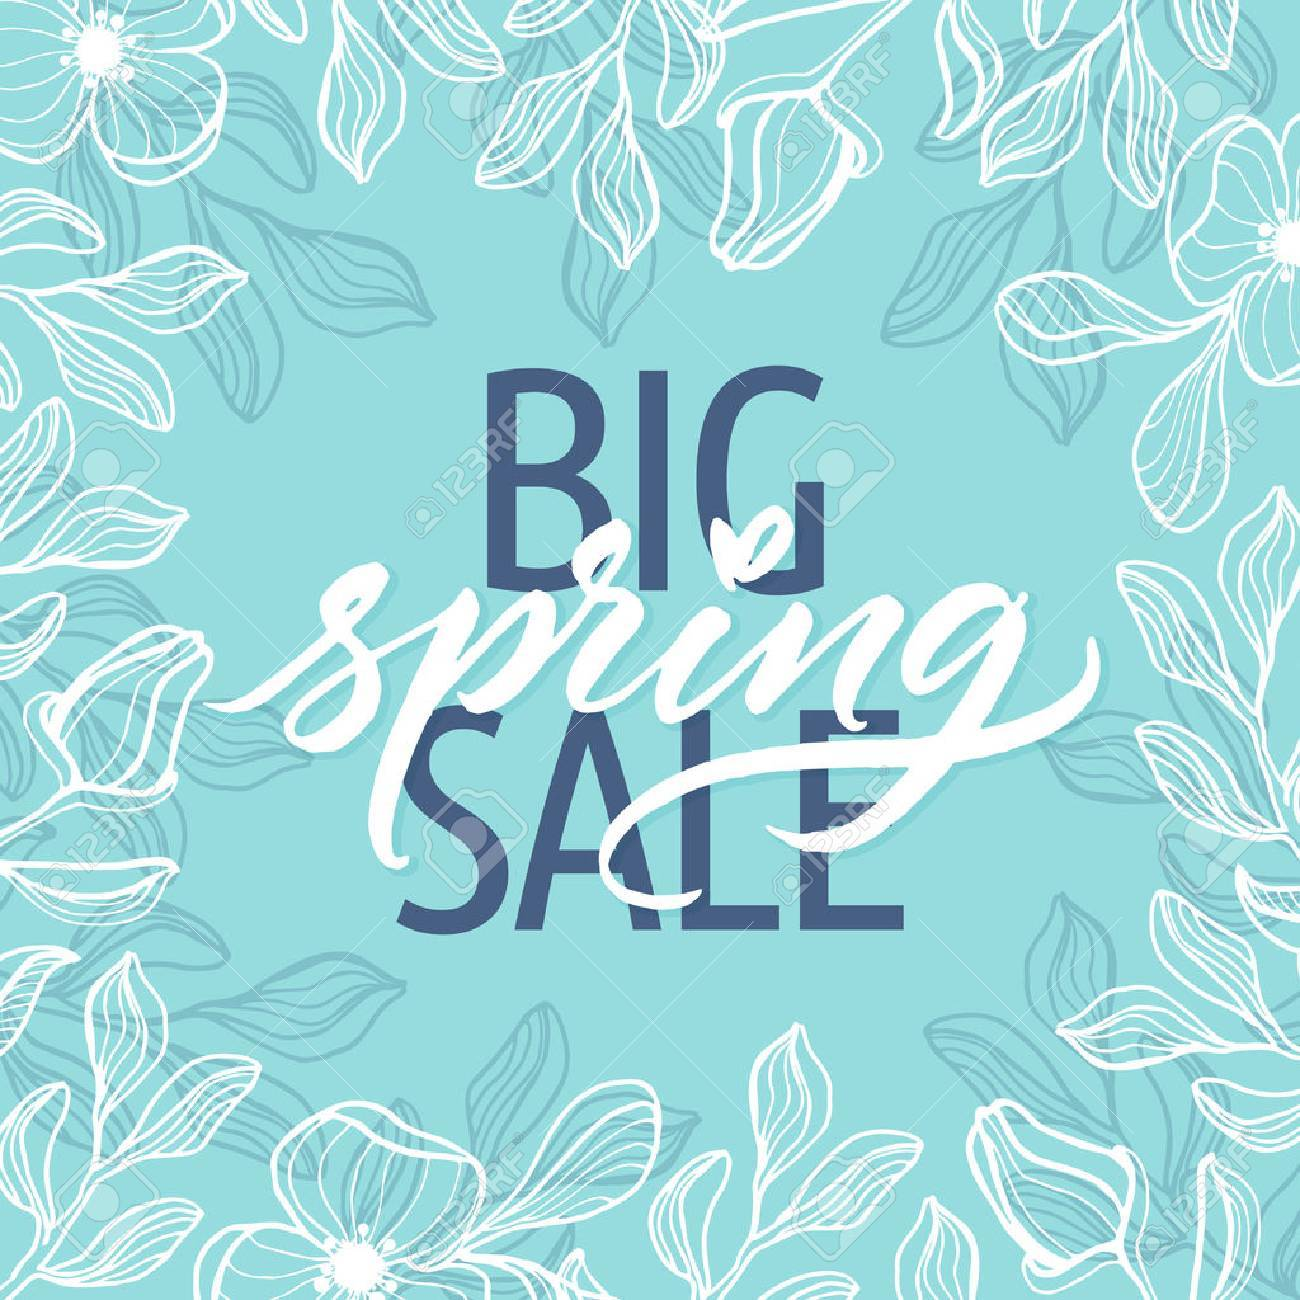 Big spring sale! Spring beautiful modern calligraphy. Hand drawn spring floral background. - 53296554